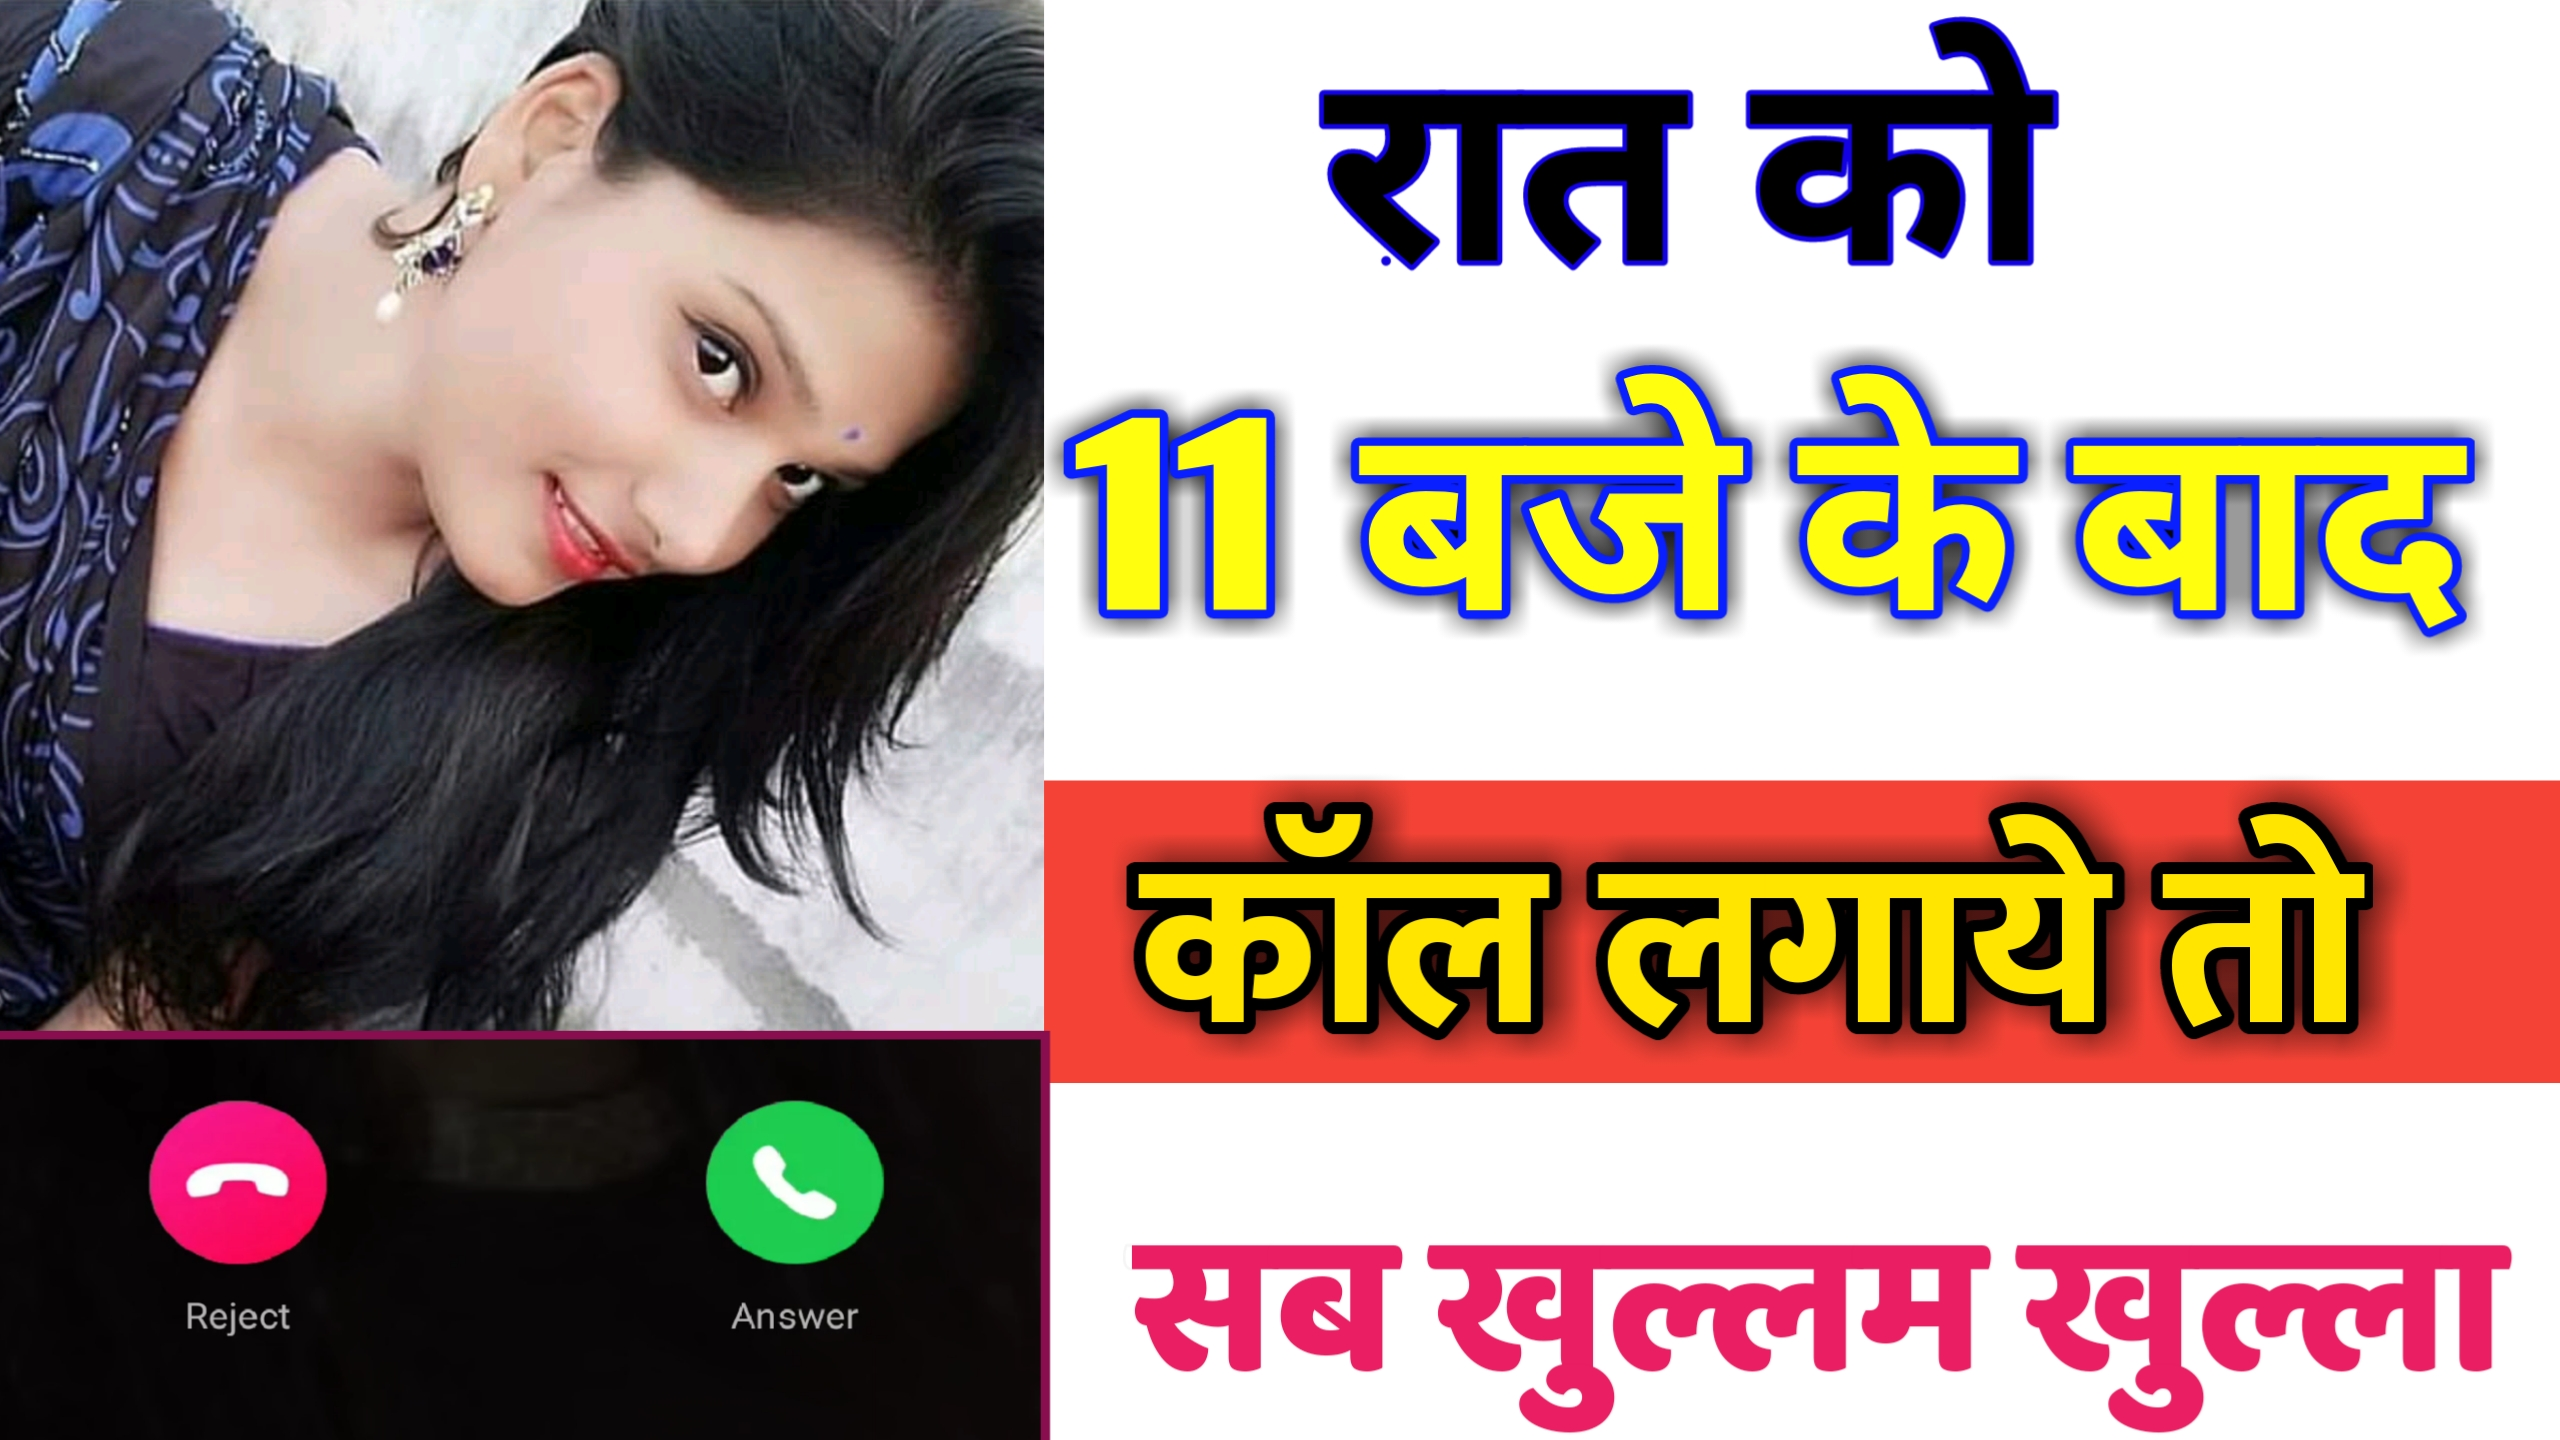 Video chat  Room And Meet New People । online chat video call par baat kare uchat